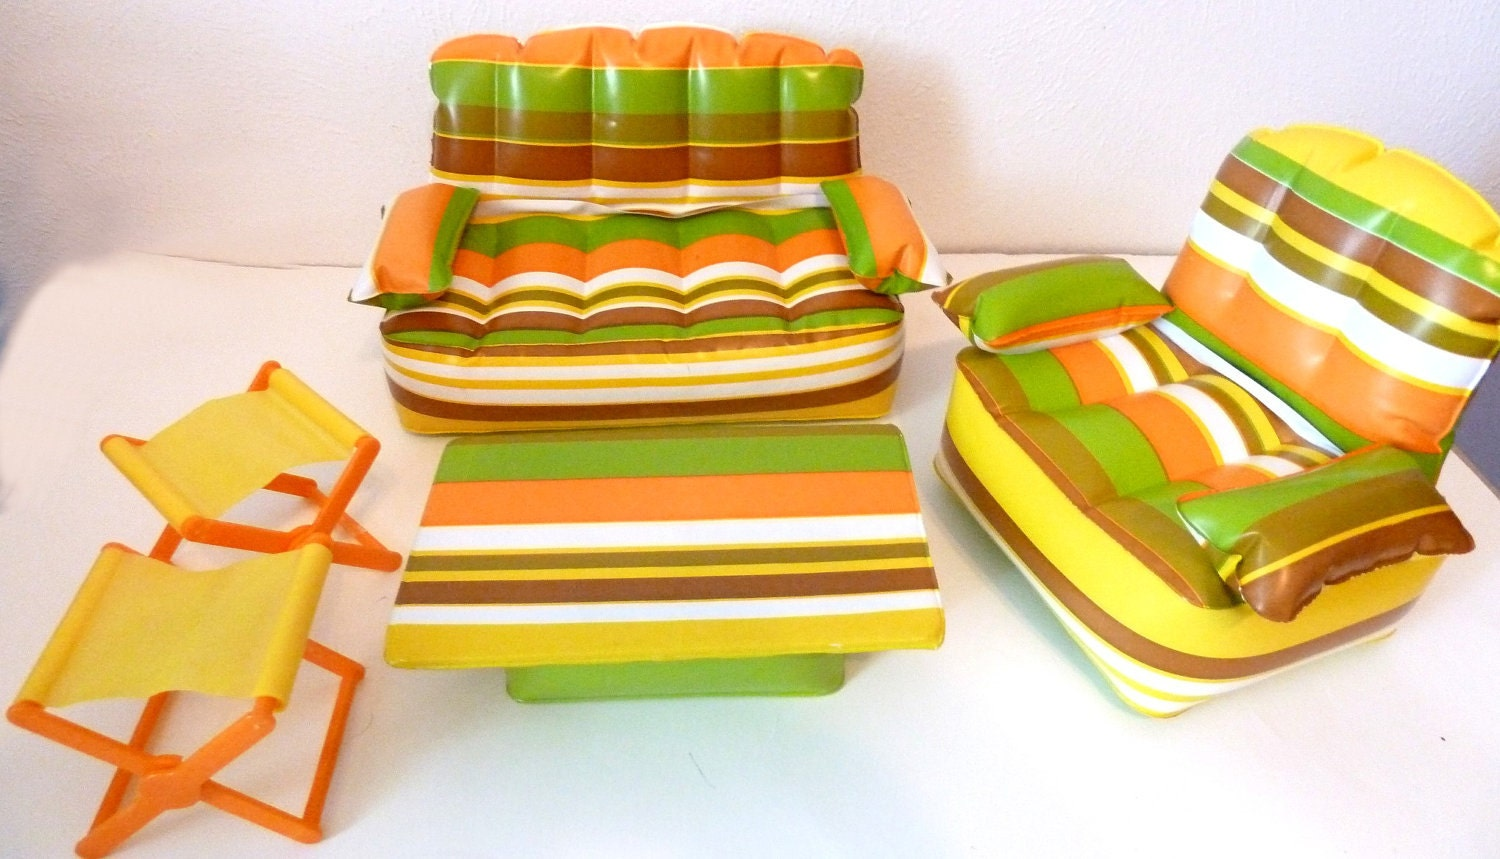 Inflatable Barbie Furniture 1970s By Sinderellasattic On Etsy